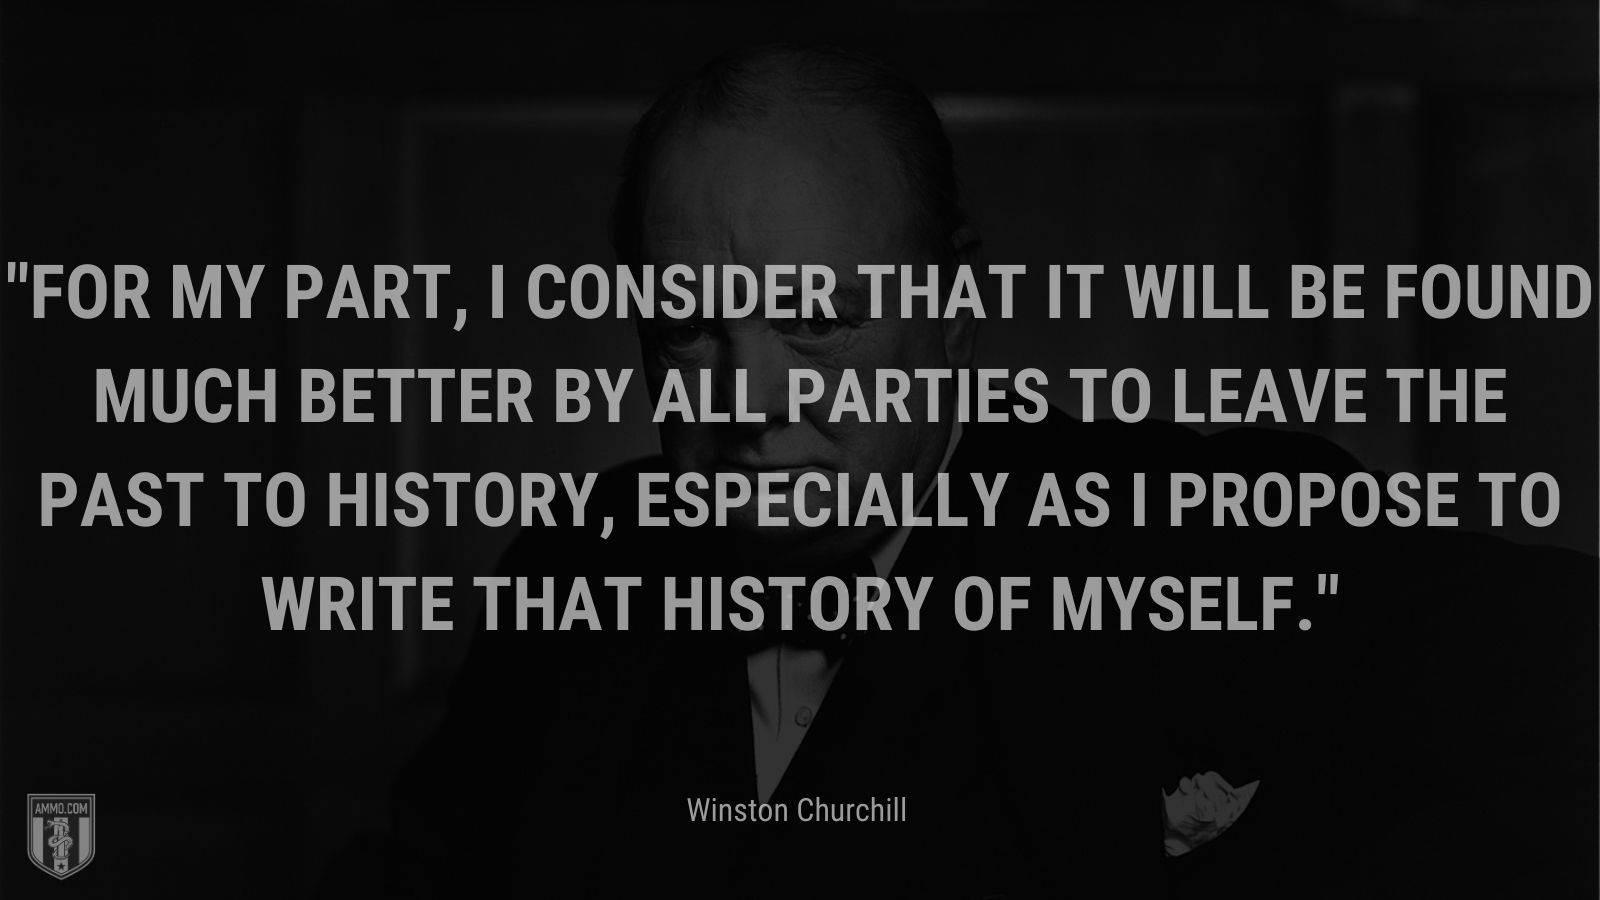 For my part, I consider that it will be found much better by all Parties to leave the past to history, especially as I propose to write that history of myself.